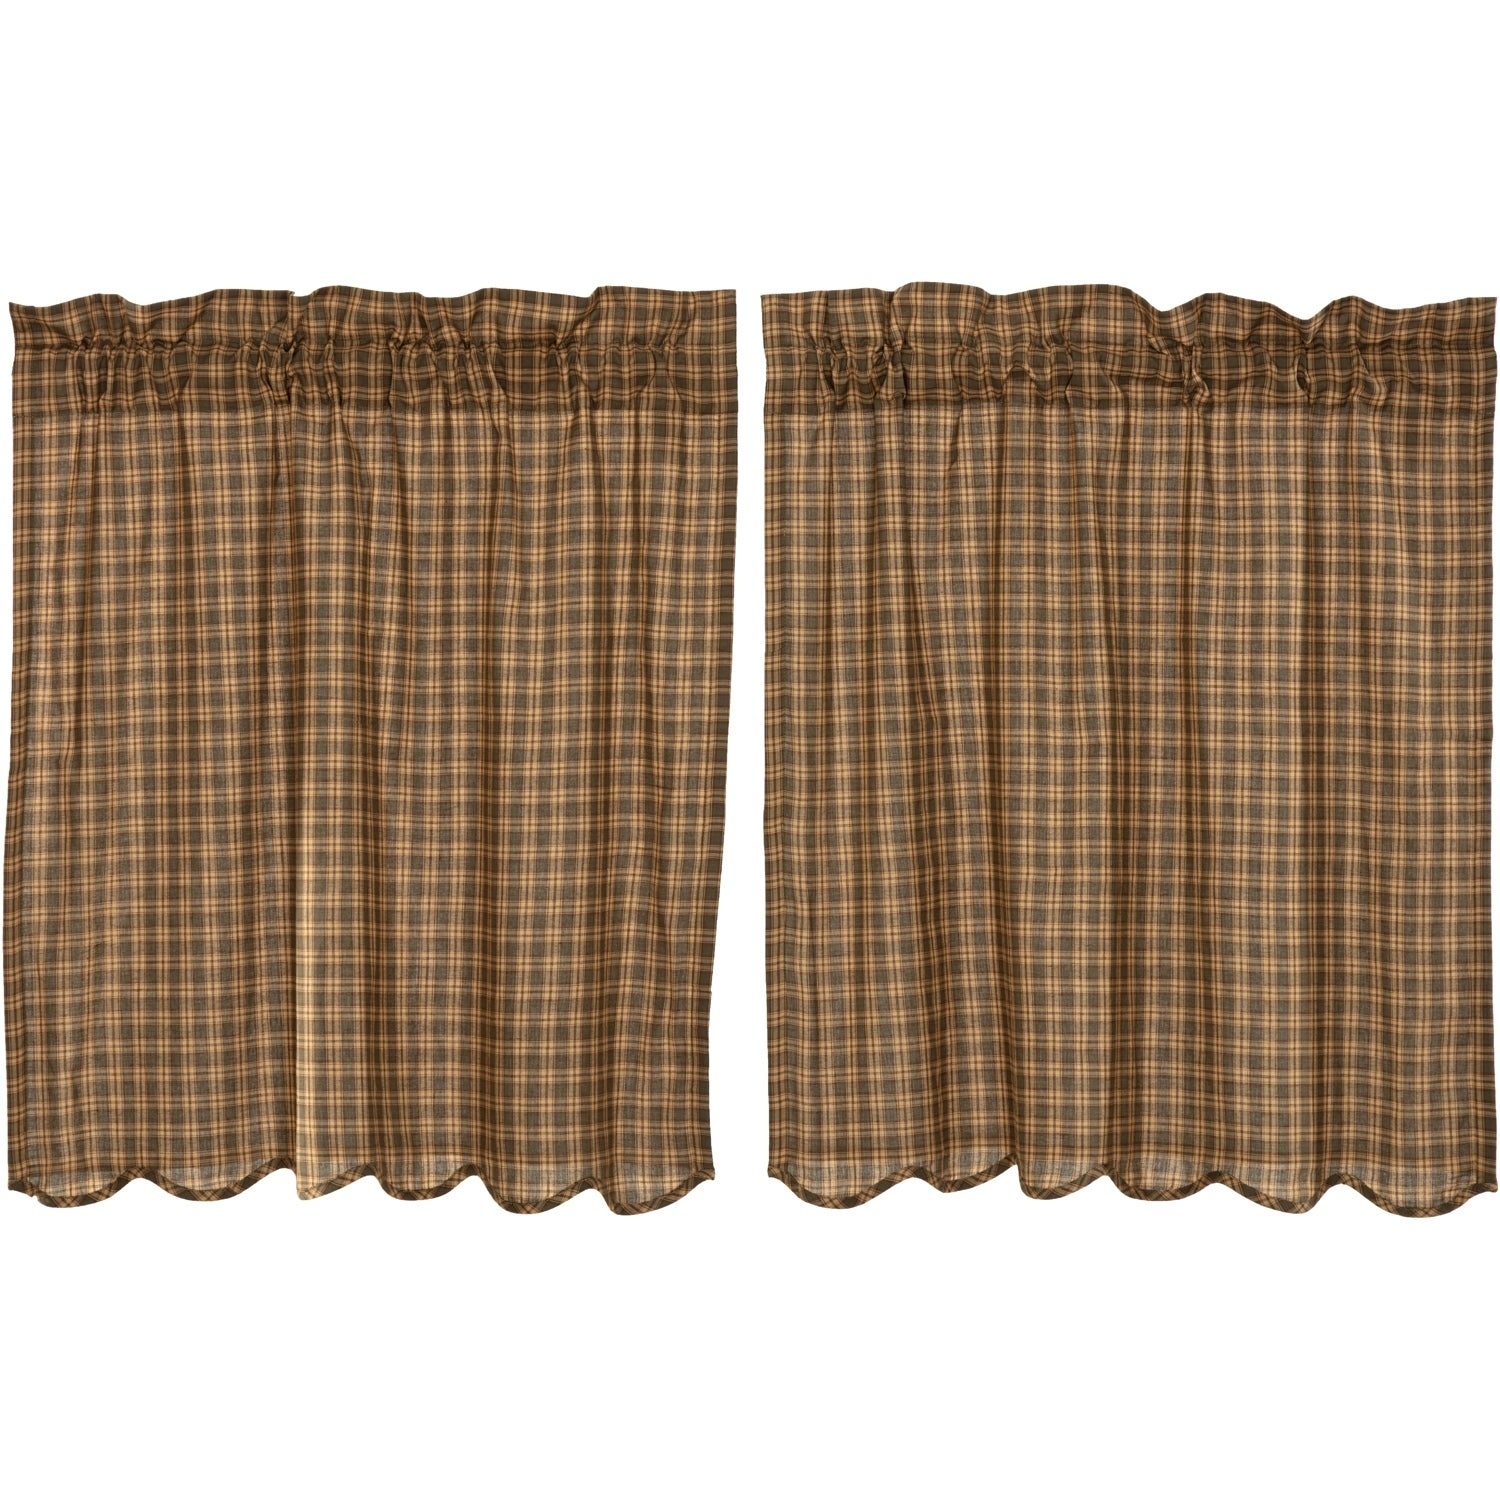 Green Rustic Kitchen Curtains Vhc Cedar Ridge Tier Pair Rod Pocket Cotton Plaid Inside Dexter 24 Inch Tier Pairs In Green (View 11 of 20)